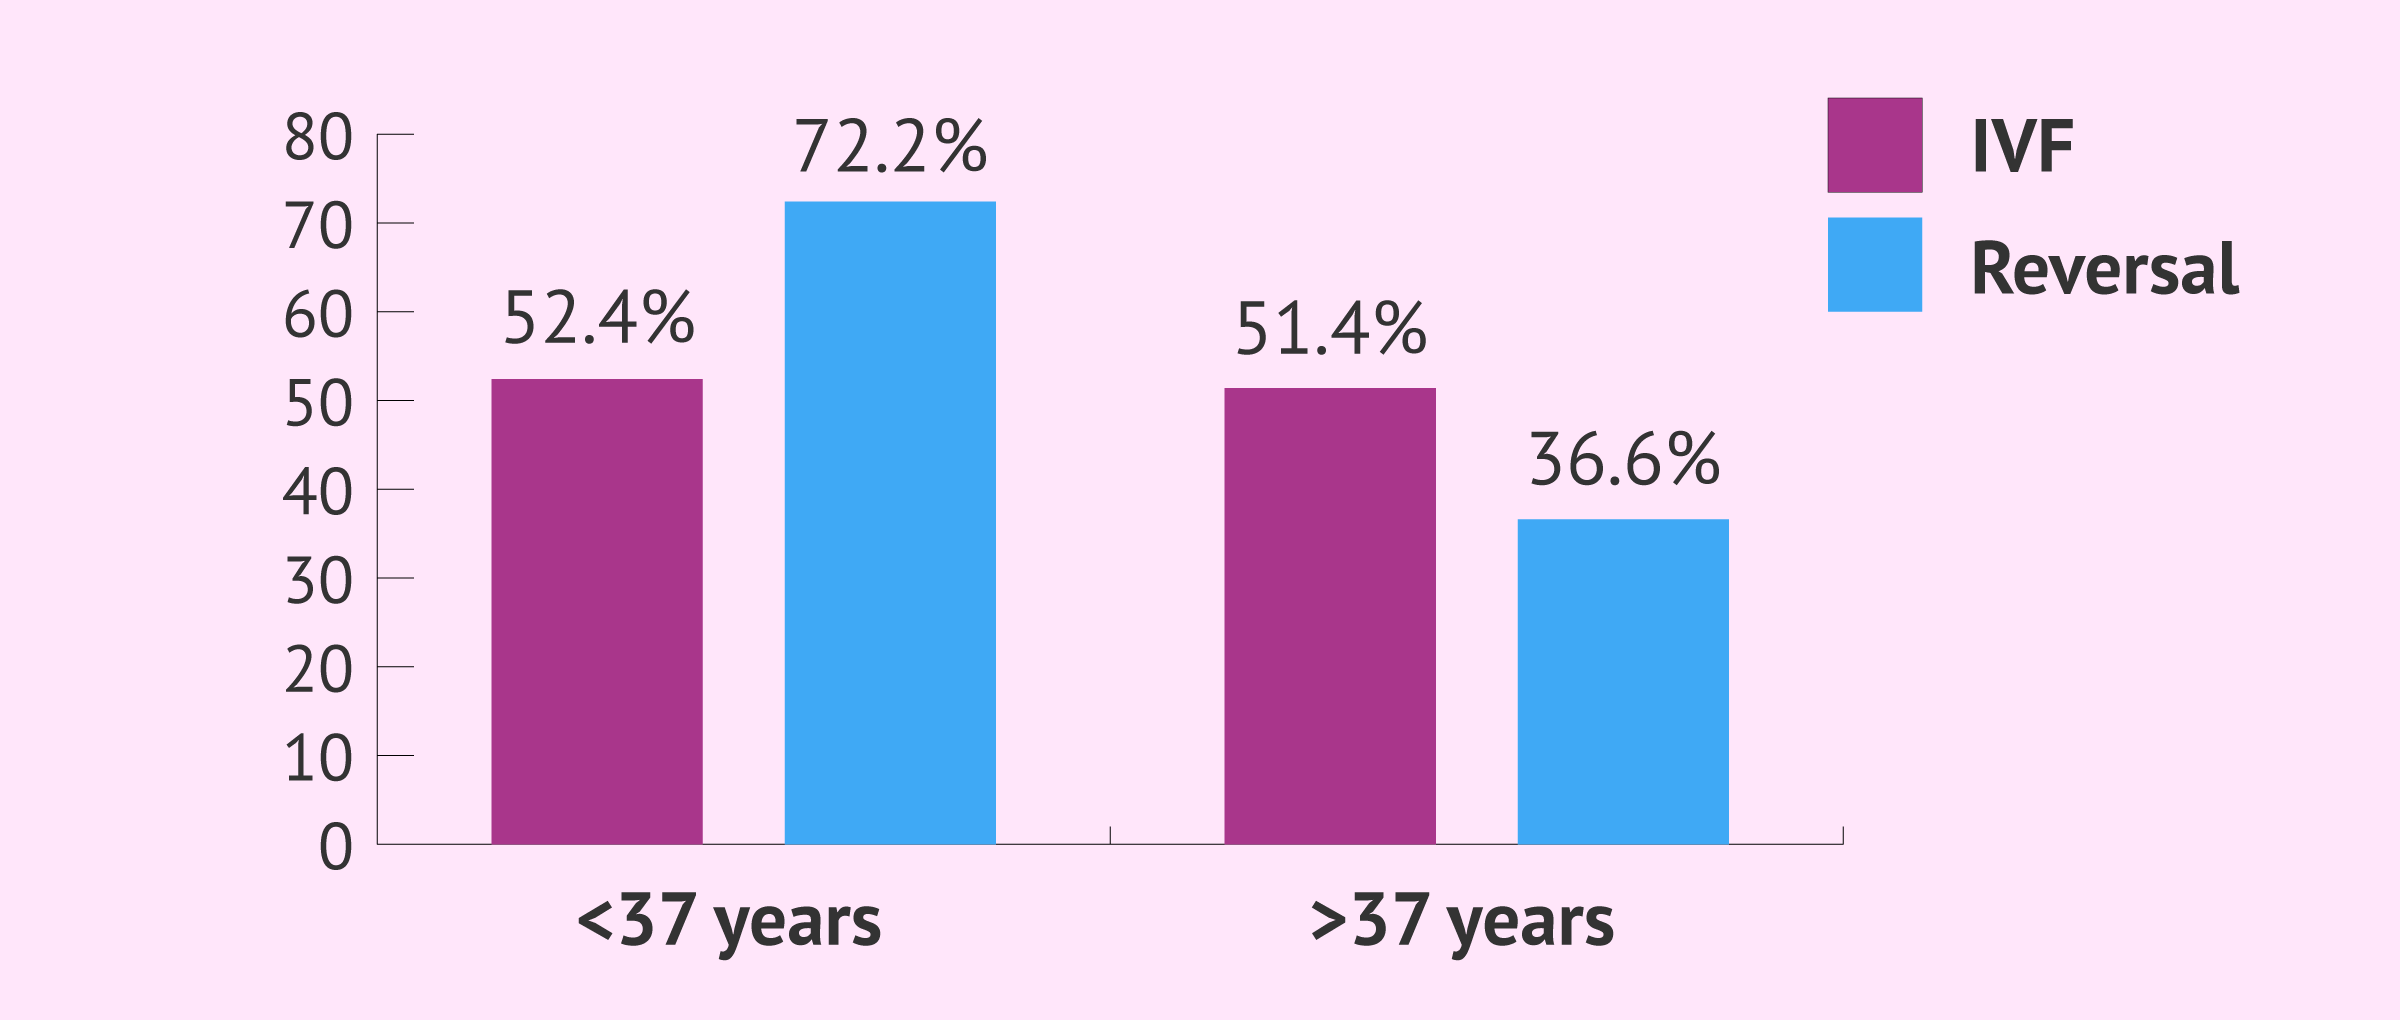 Imagen: Pregnancy rates with IVF and tubal recanalization surgery based on the woman's age